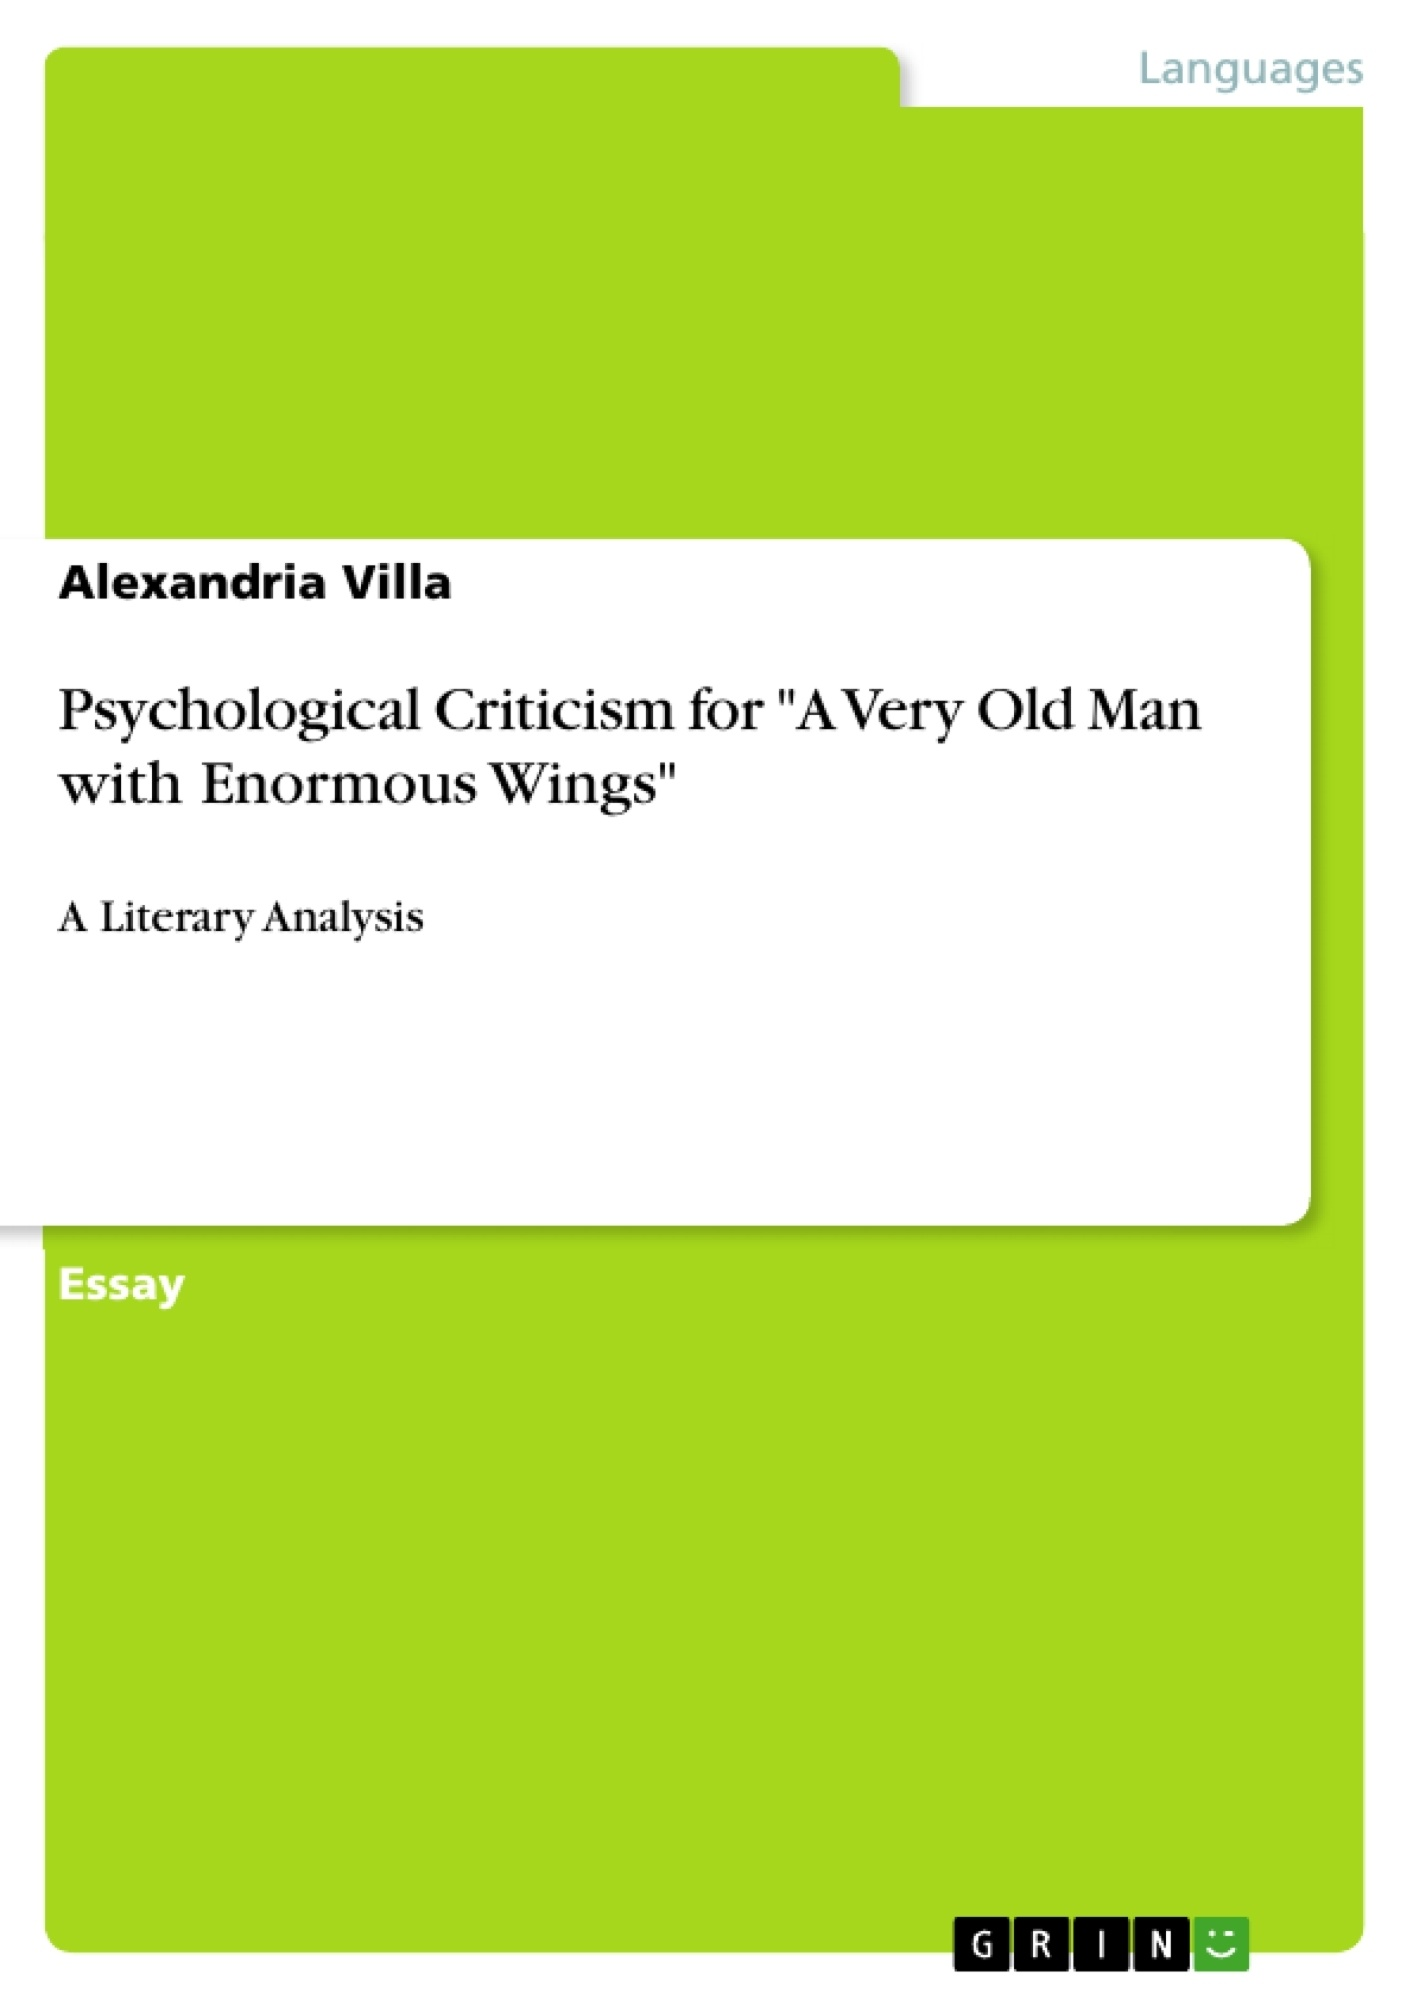 psychological criticism for a very old man enormous wings  earn money and win an iphone x